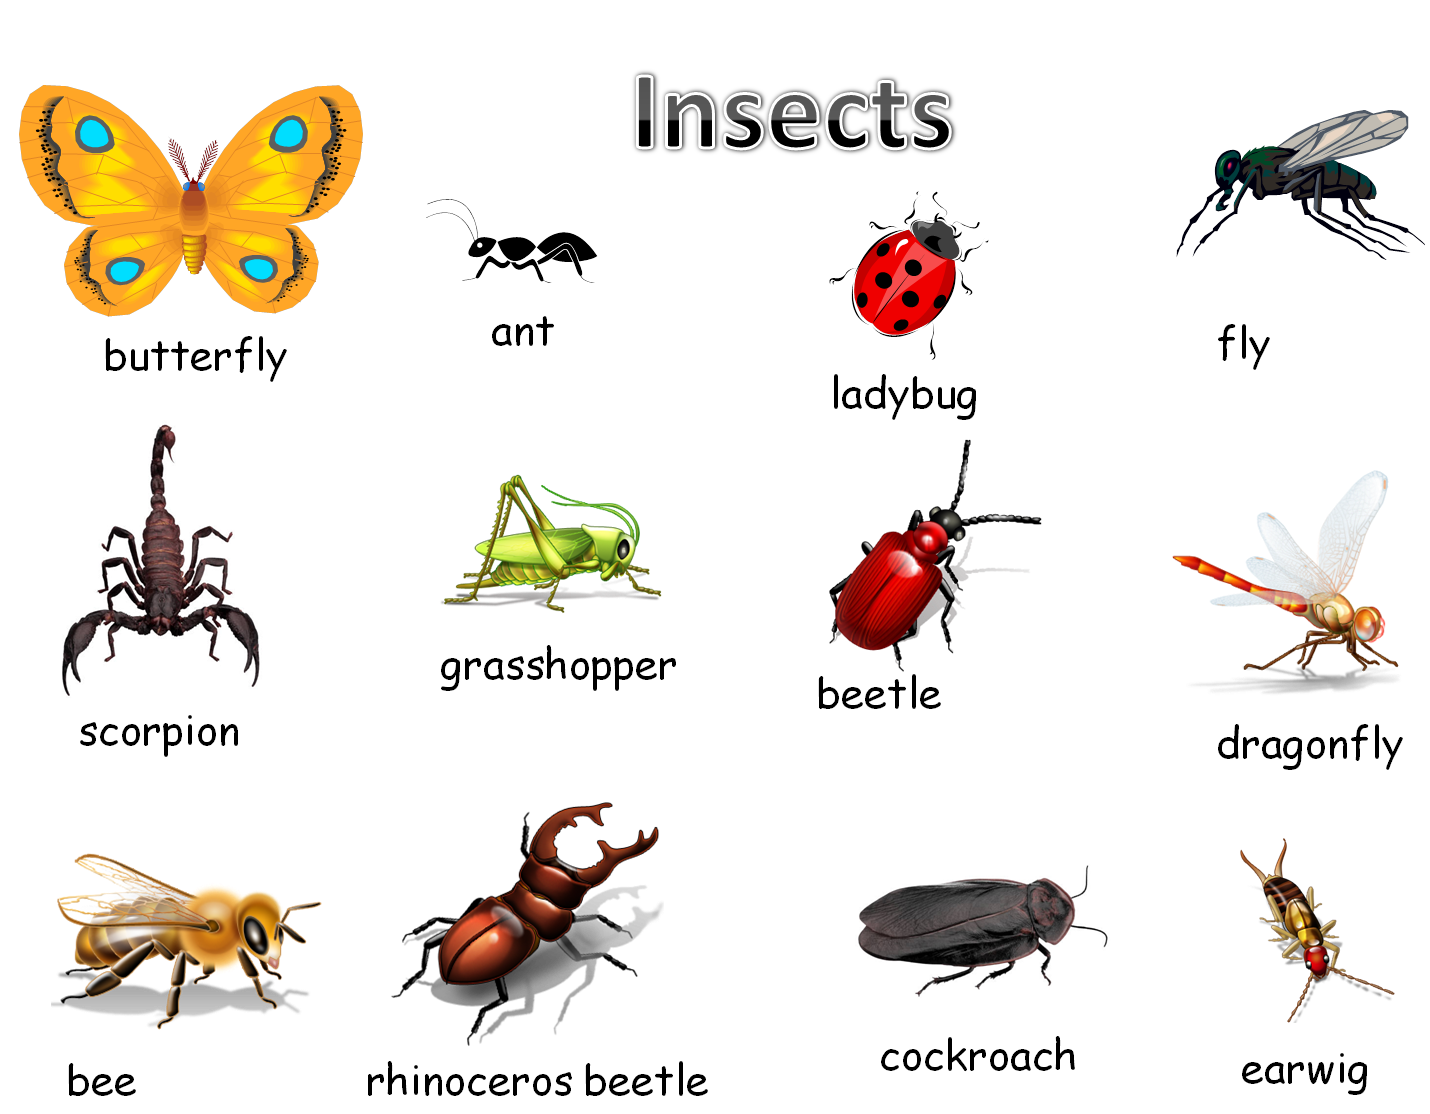 Worksheet On Insects For Kindergarten